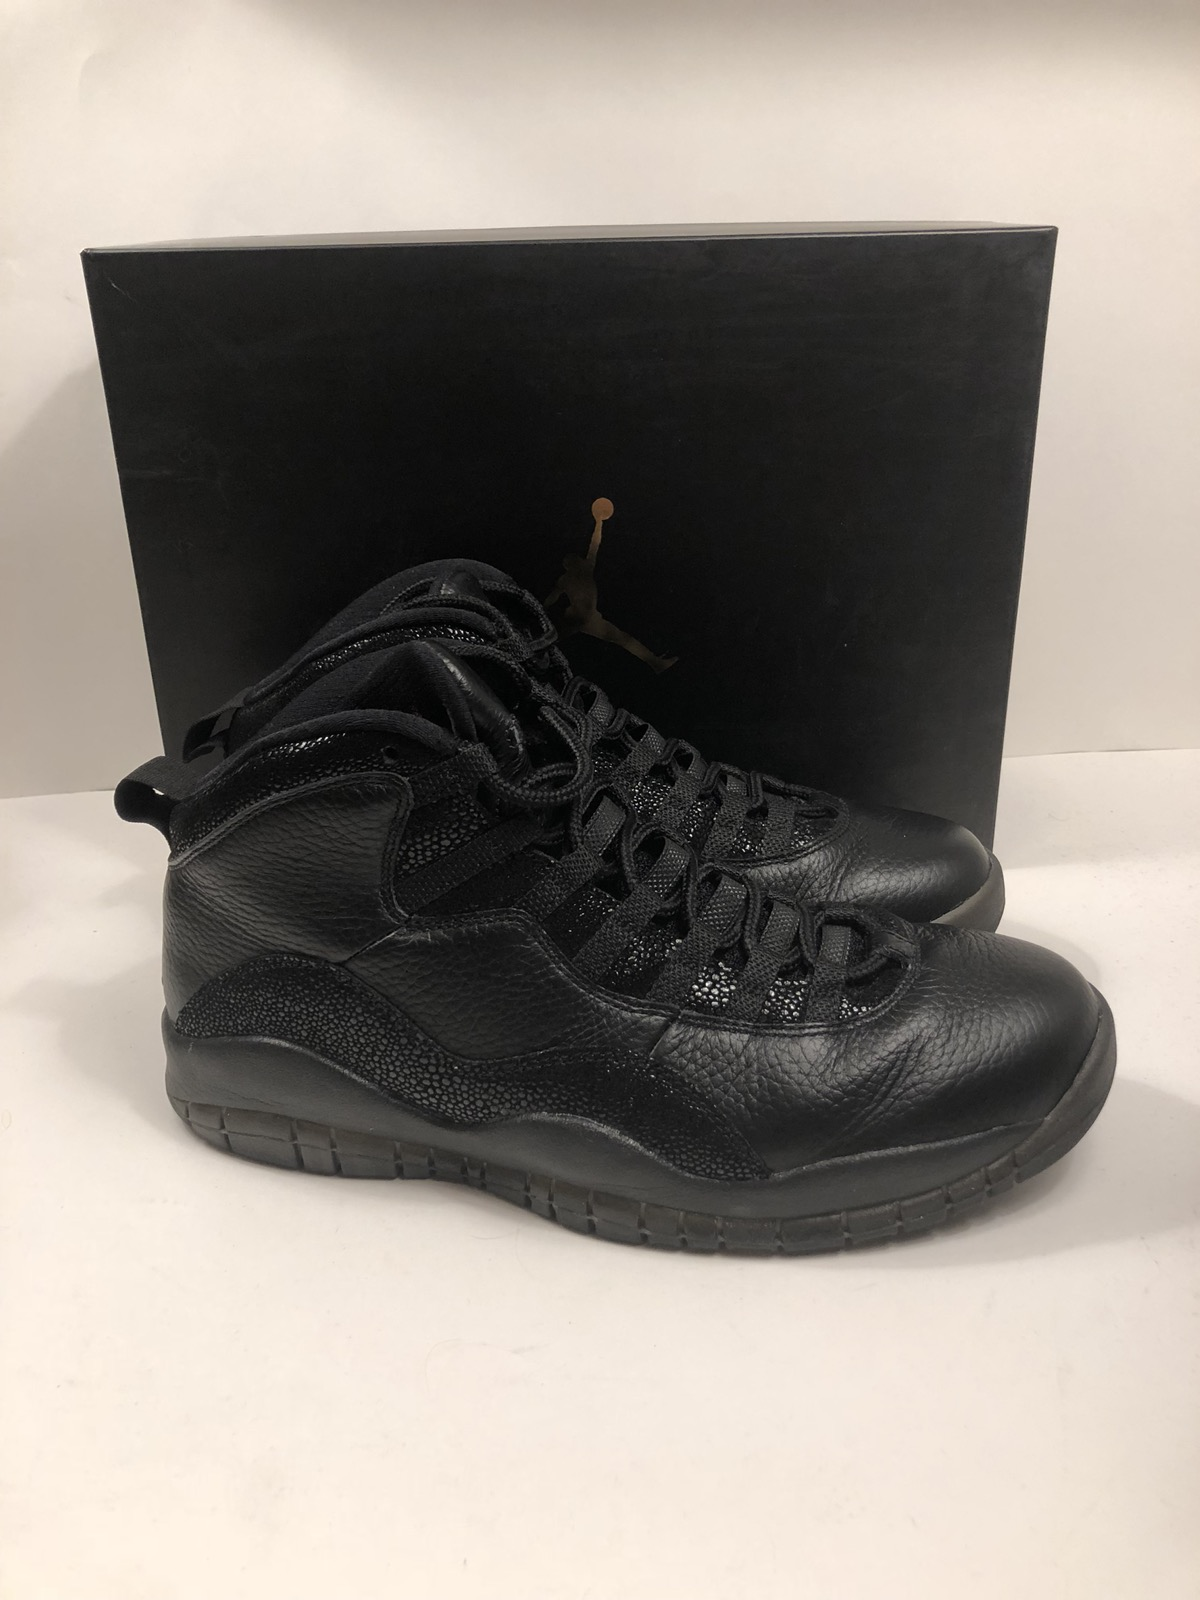 c105001cd9a Jordan Brand NIKE AIR JORDAN X RETRO 10 OVO DRAKE BLACK METALLIC GOLD 819955 -030 MEN S SZ 10 Size 10 - Hi-Top Sneakers for Sale - Grailed